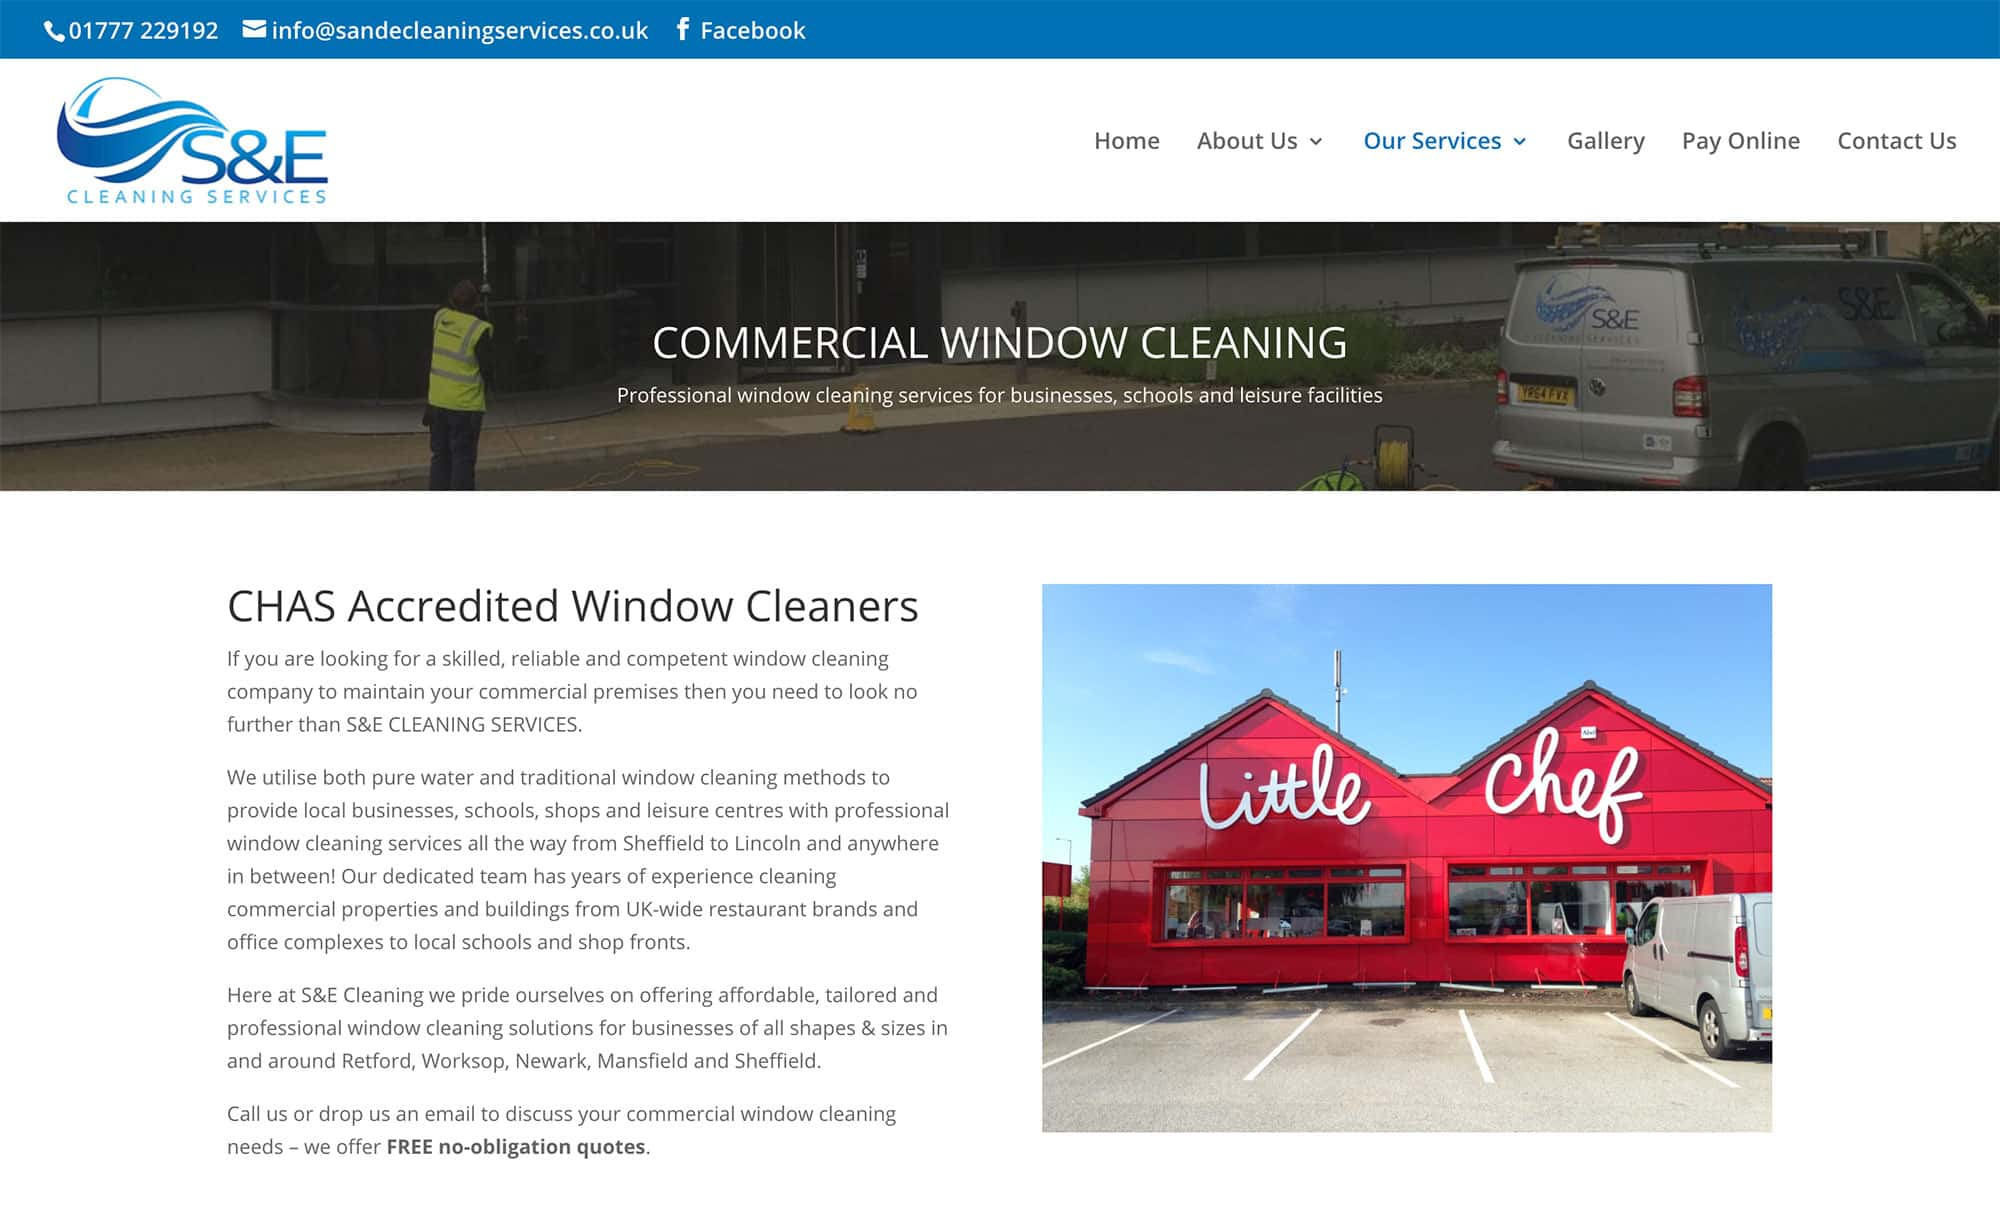 S & E Cleaning website service pages